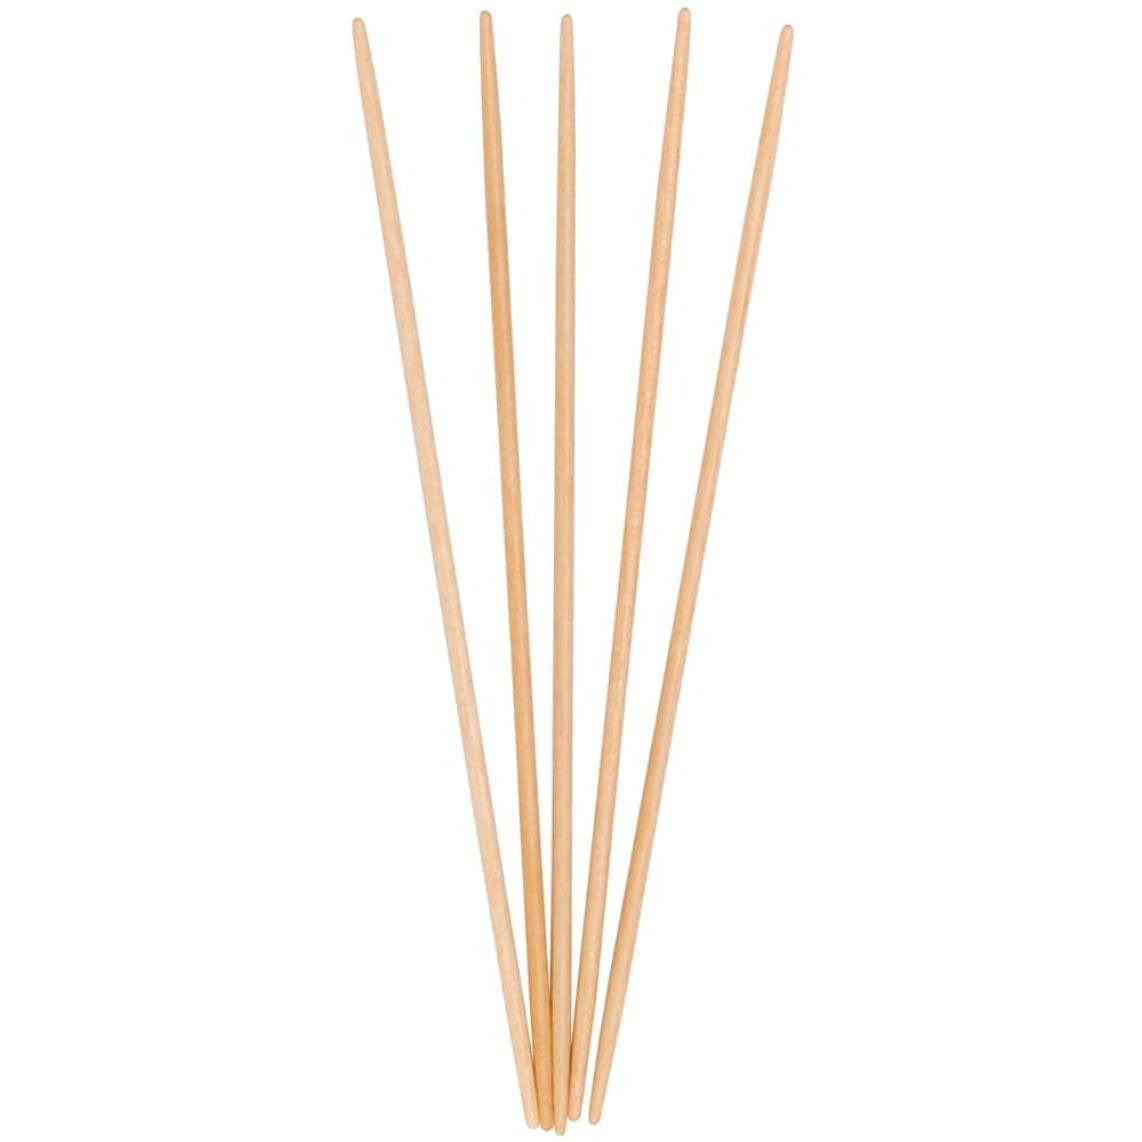 Brittany Double Point 5-inch (13cm) Knitting Needles (Set of 5); Size US 0 (2.0 mm) 4004